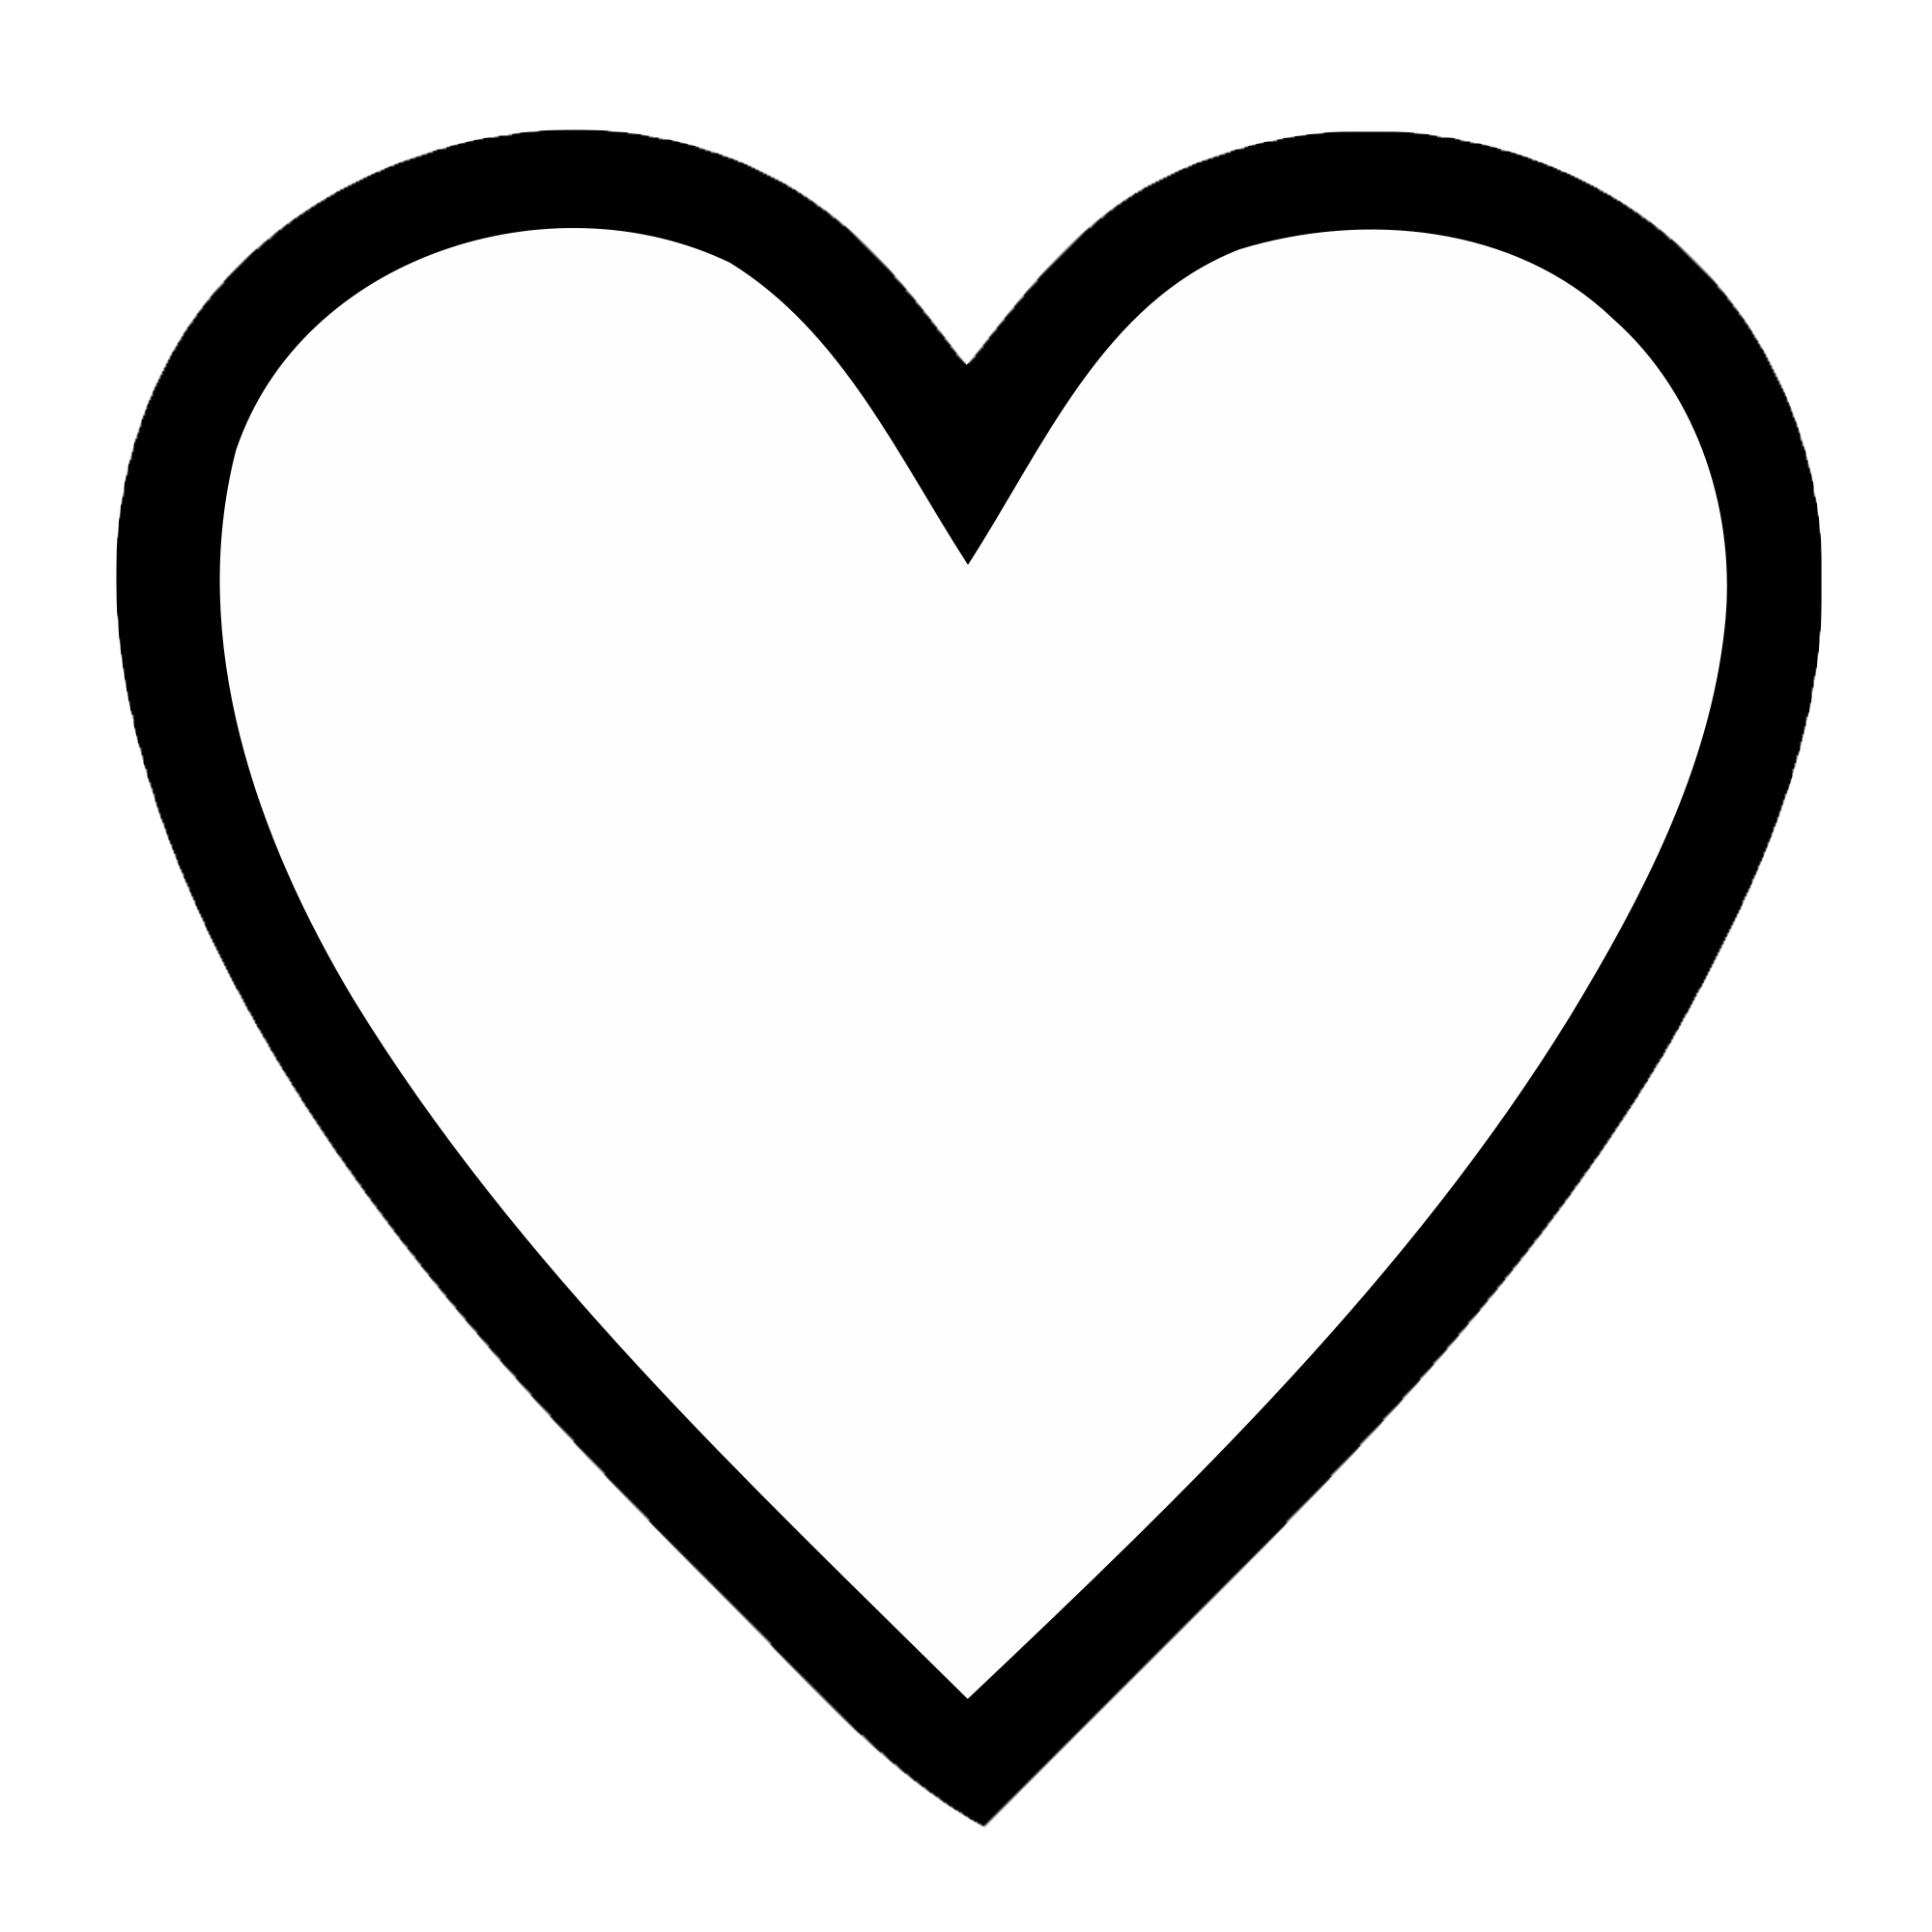 Heart-shaped clipart transparent Clip Download Art Heart Wikimedia